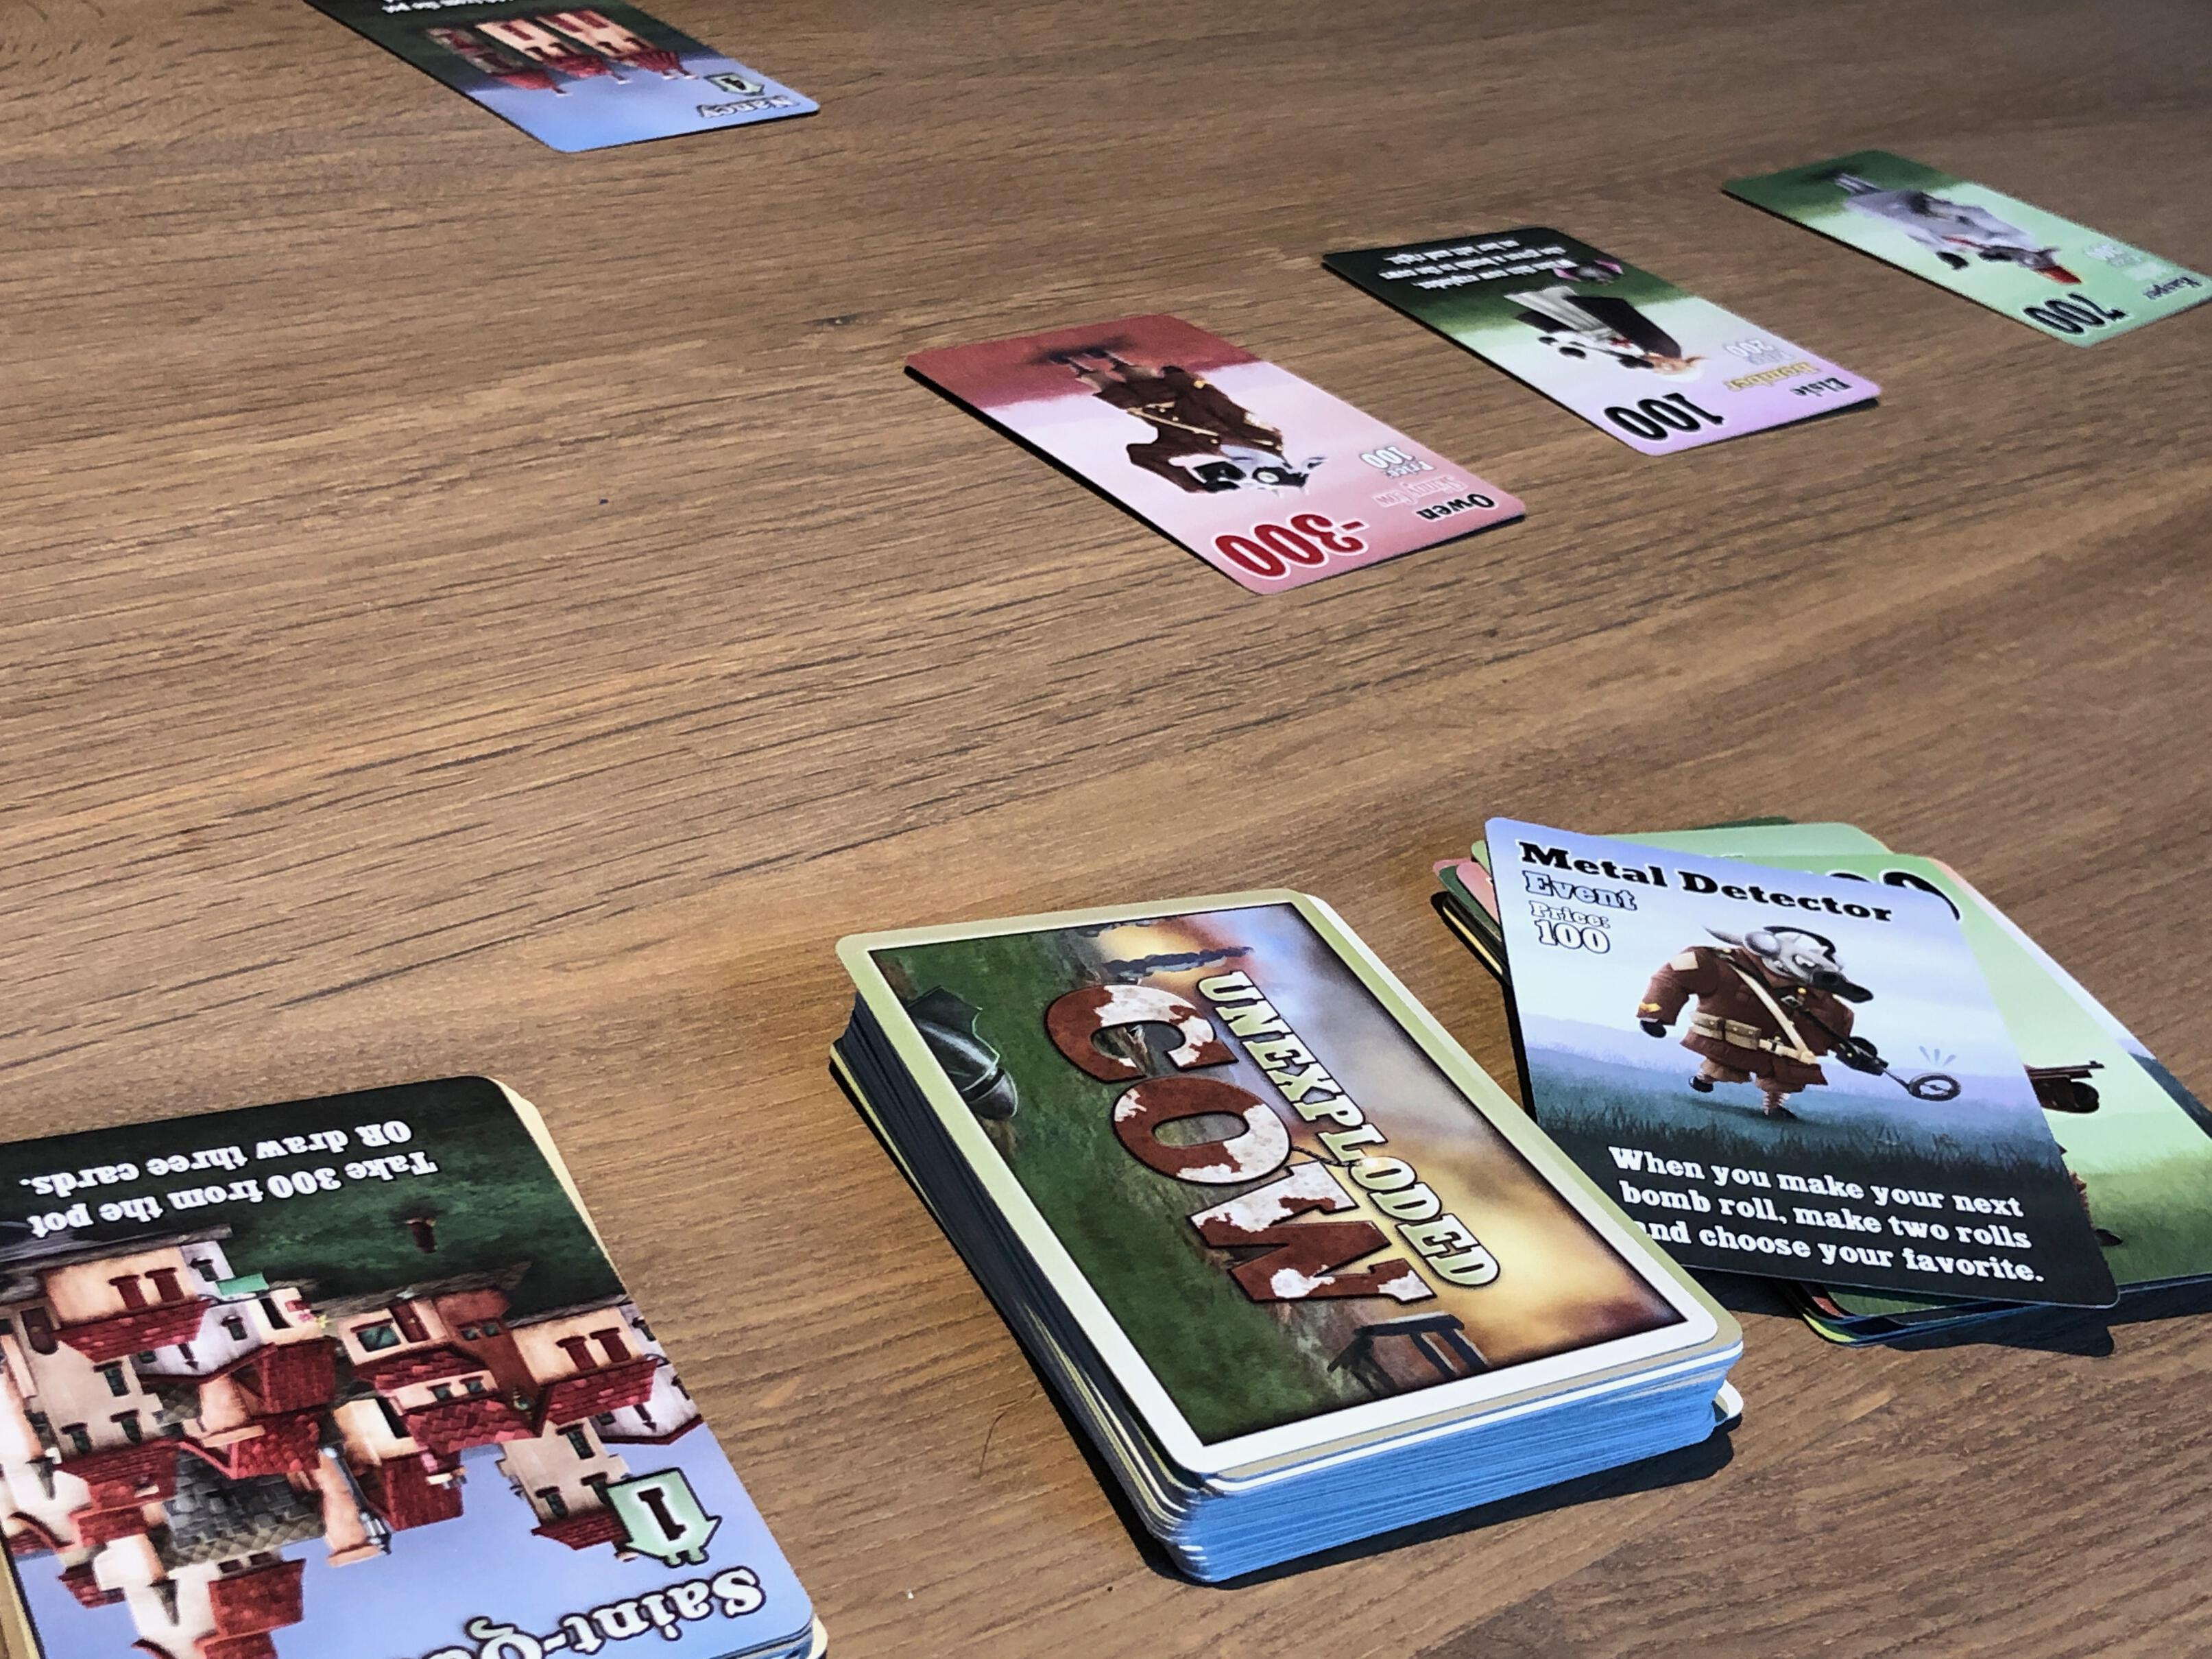 Photo of several cards for the game Unexploded Cow on a table.